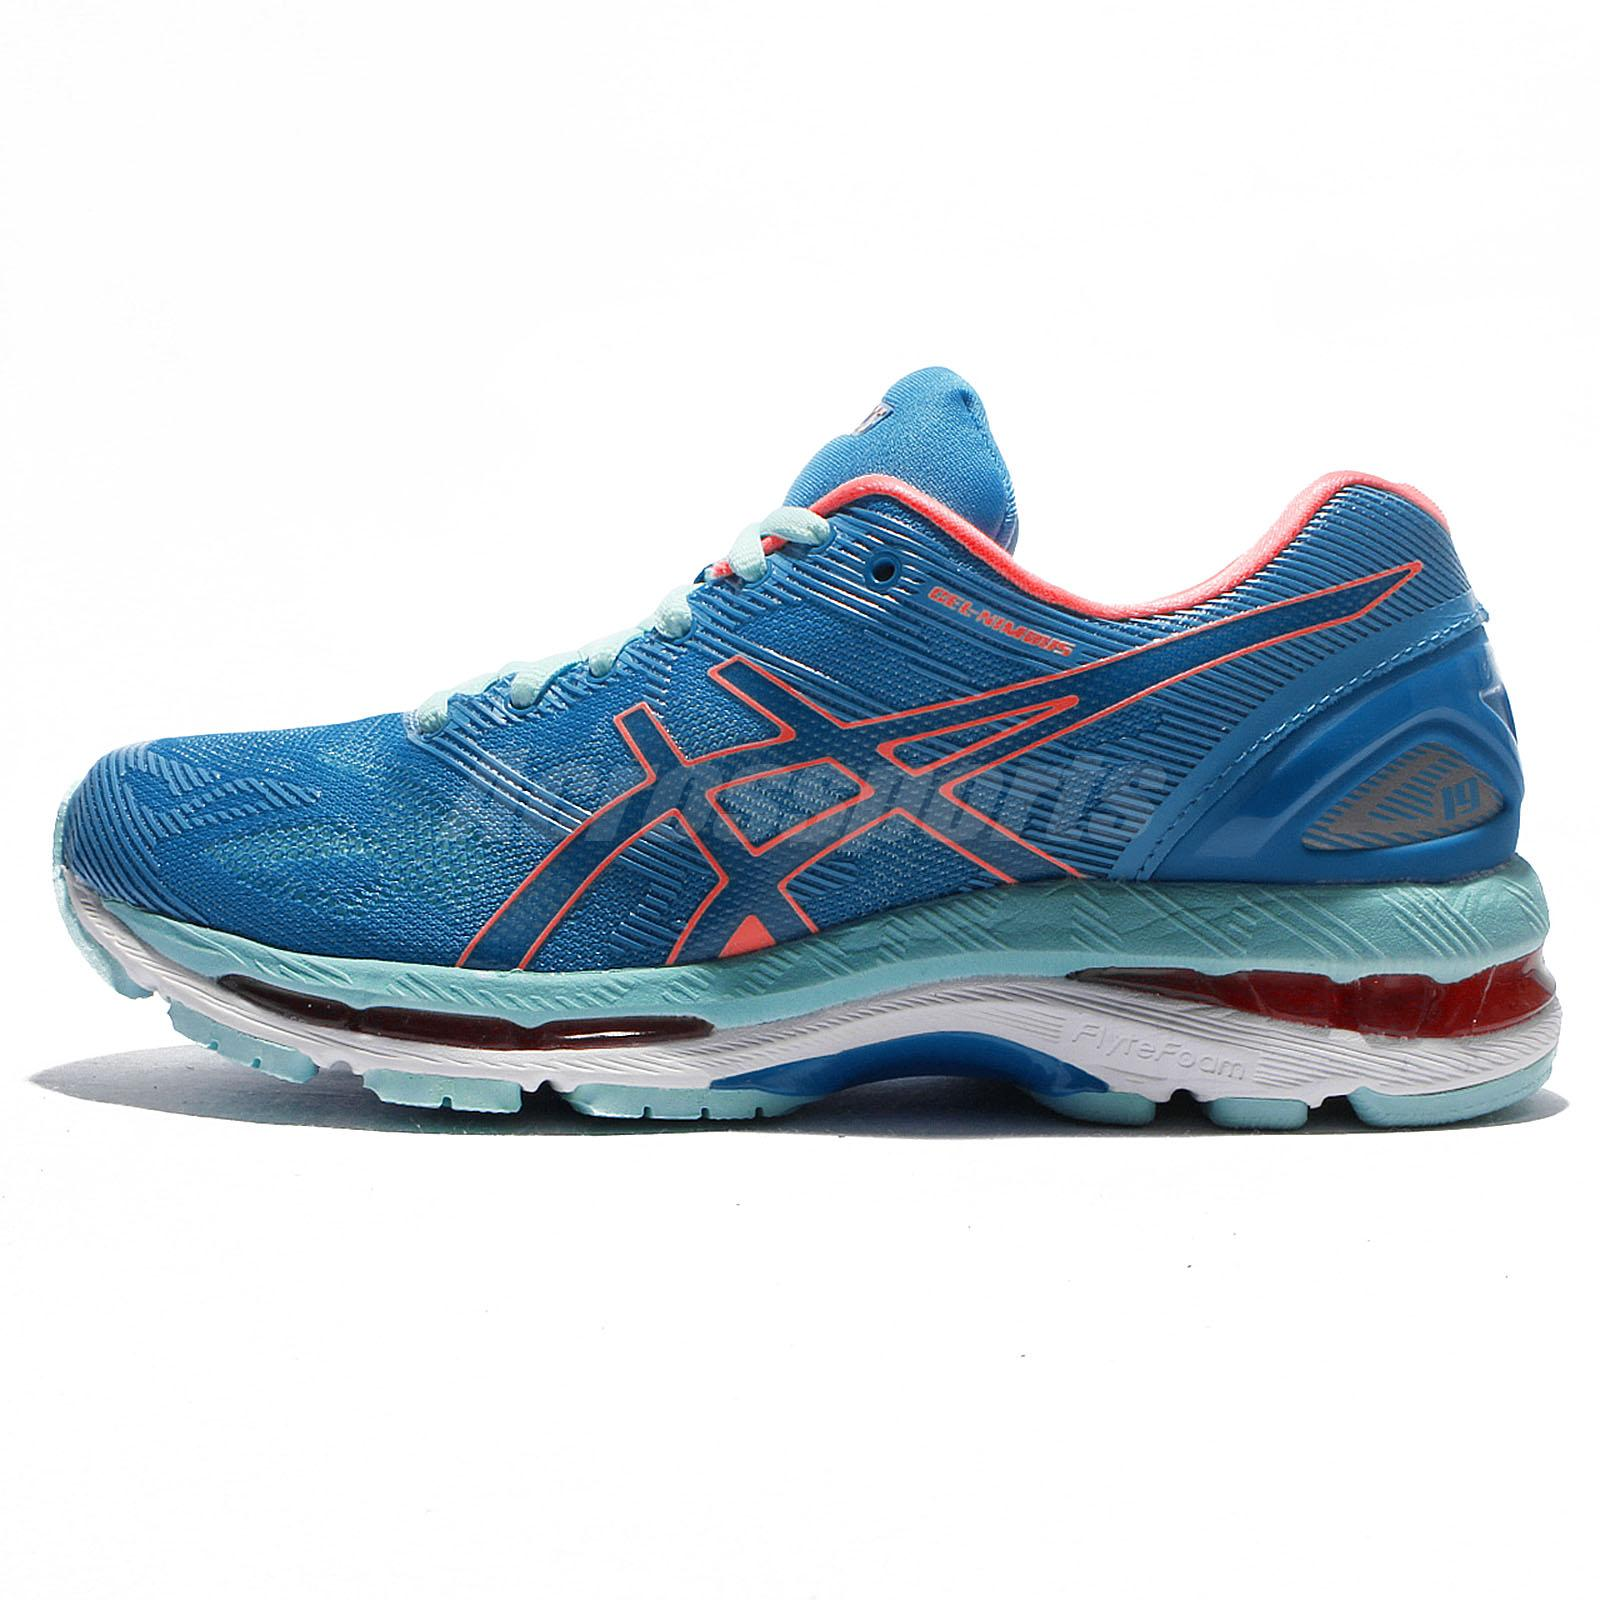 huge discount f4cb7 dcb19 Details about Asics Gel-Nimbus 19 Blue Green Orange Women Running Shoes  Sneakers T750N-4306